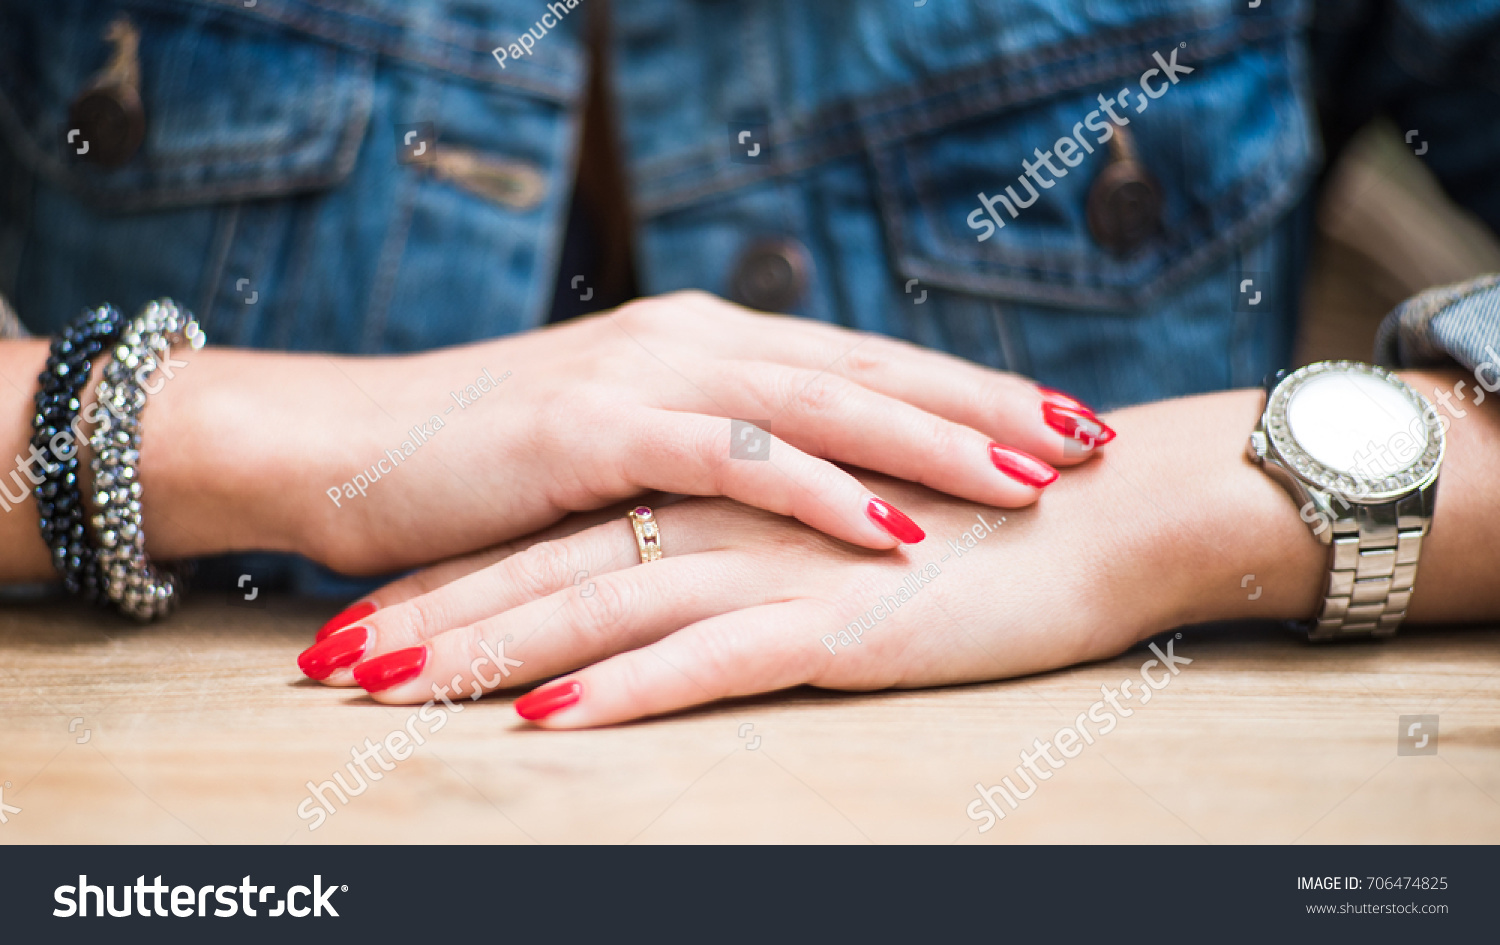 Girls Hands Bright Red Nails Luxury Stock Photo 706474825 ...